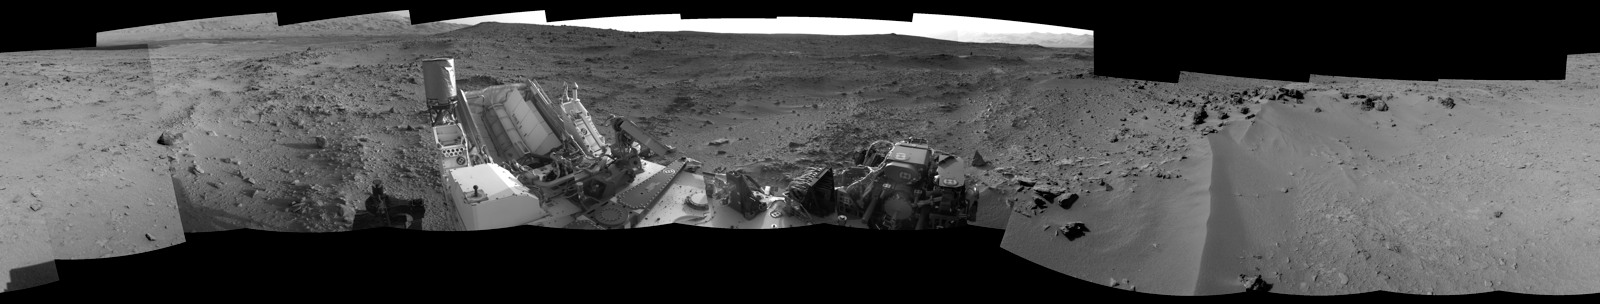 Curiosity's View on the Way to 'Glenelg'